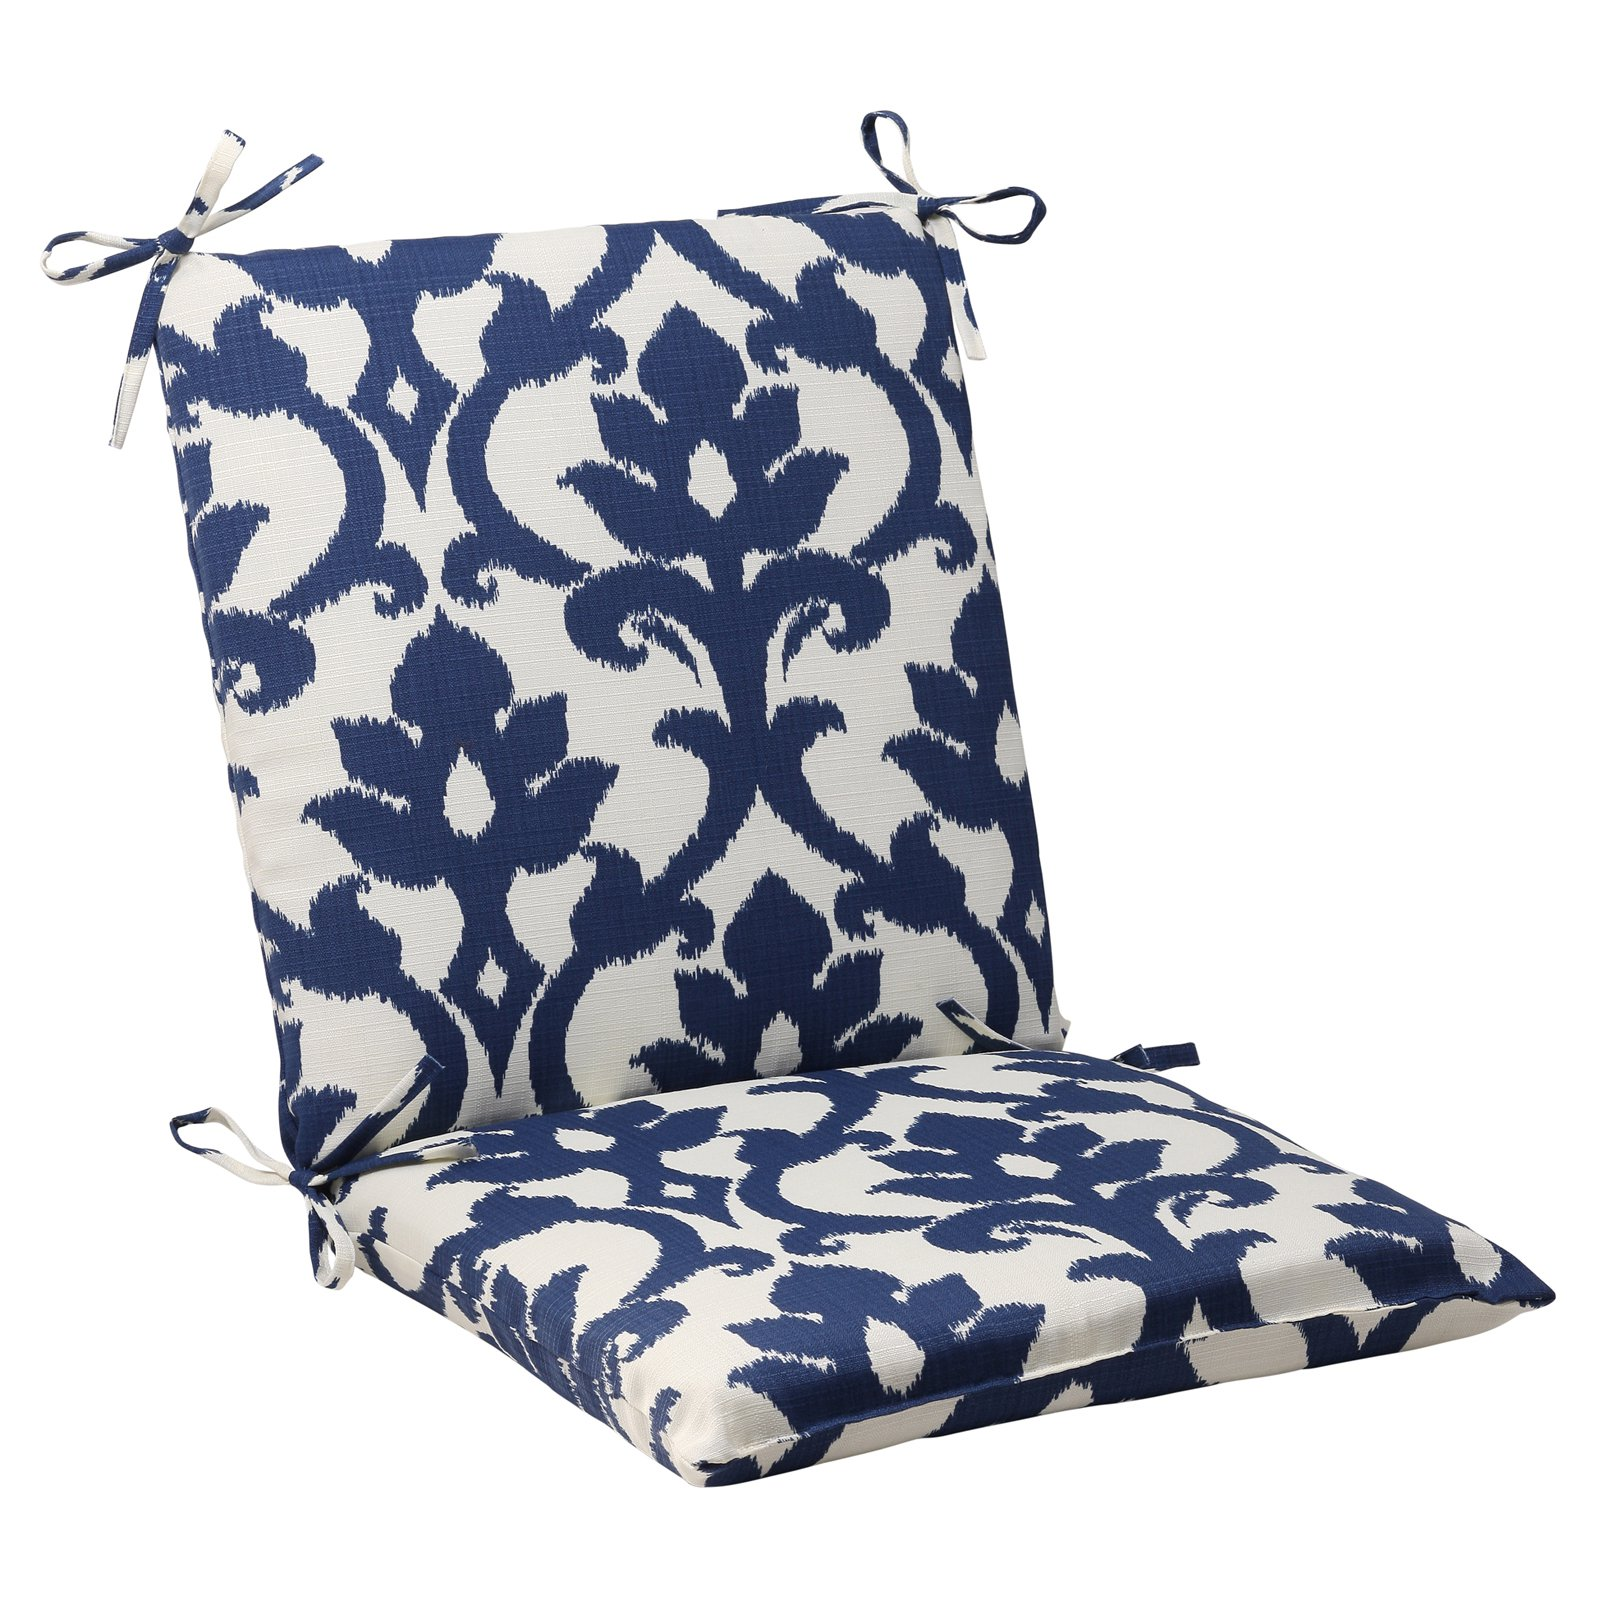 Phenomenal Pillow Perfect Outdoor Indoor Bosco Navy Squared Corners Chair Cushion Ibusinesslaw Wood Chair Design Ideas Ibusinesslaworg